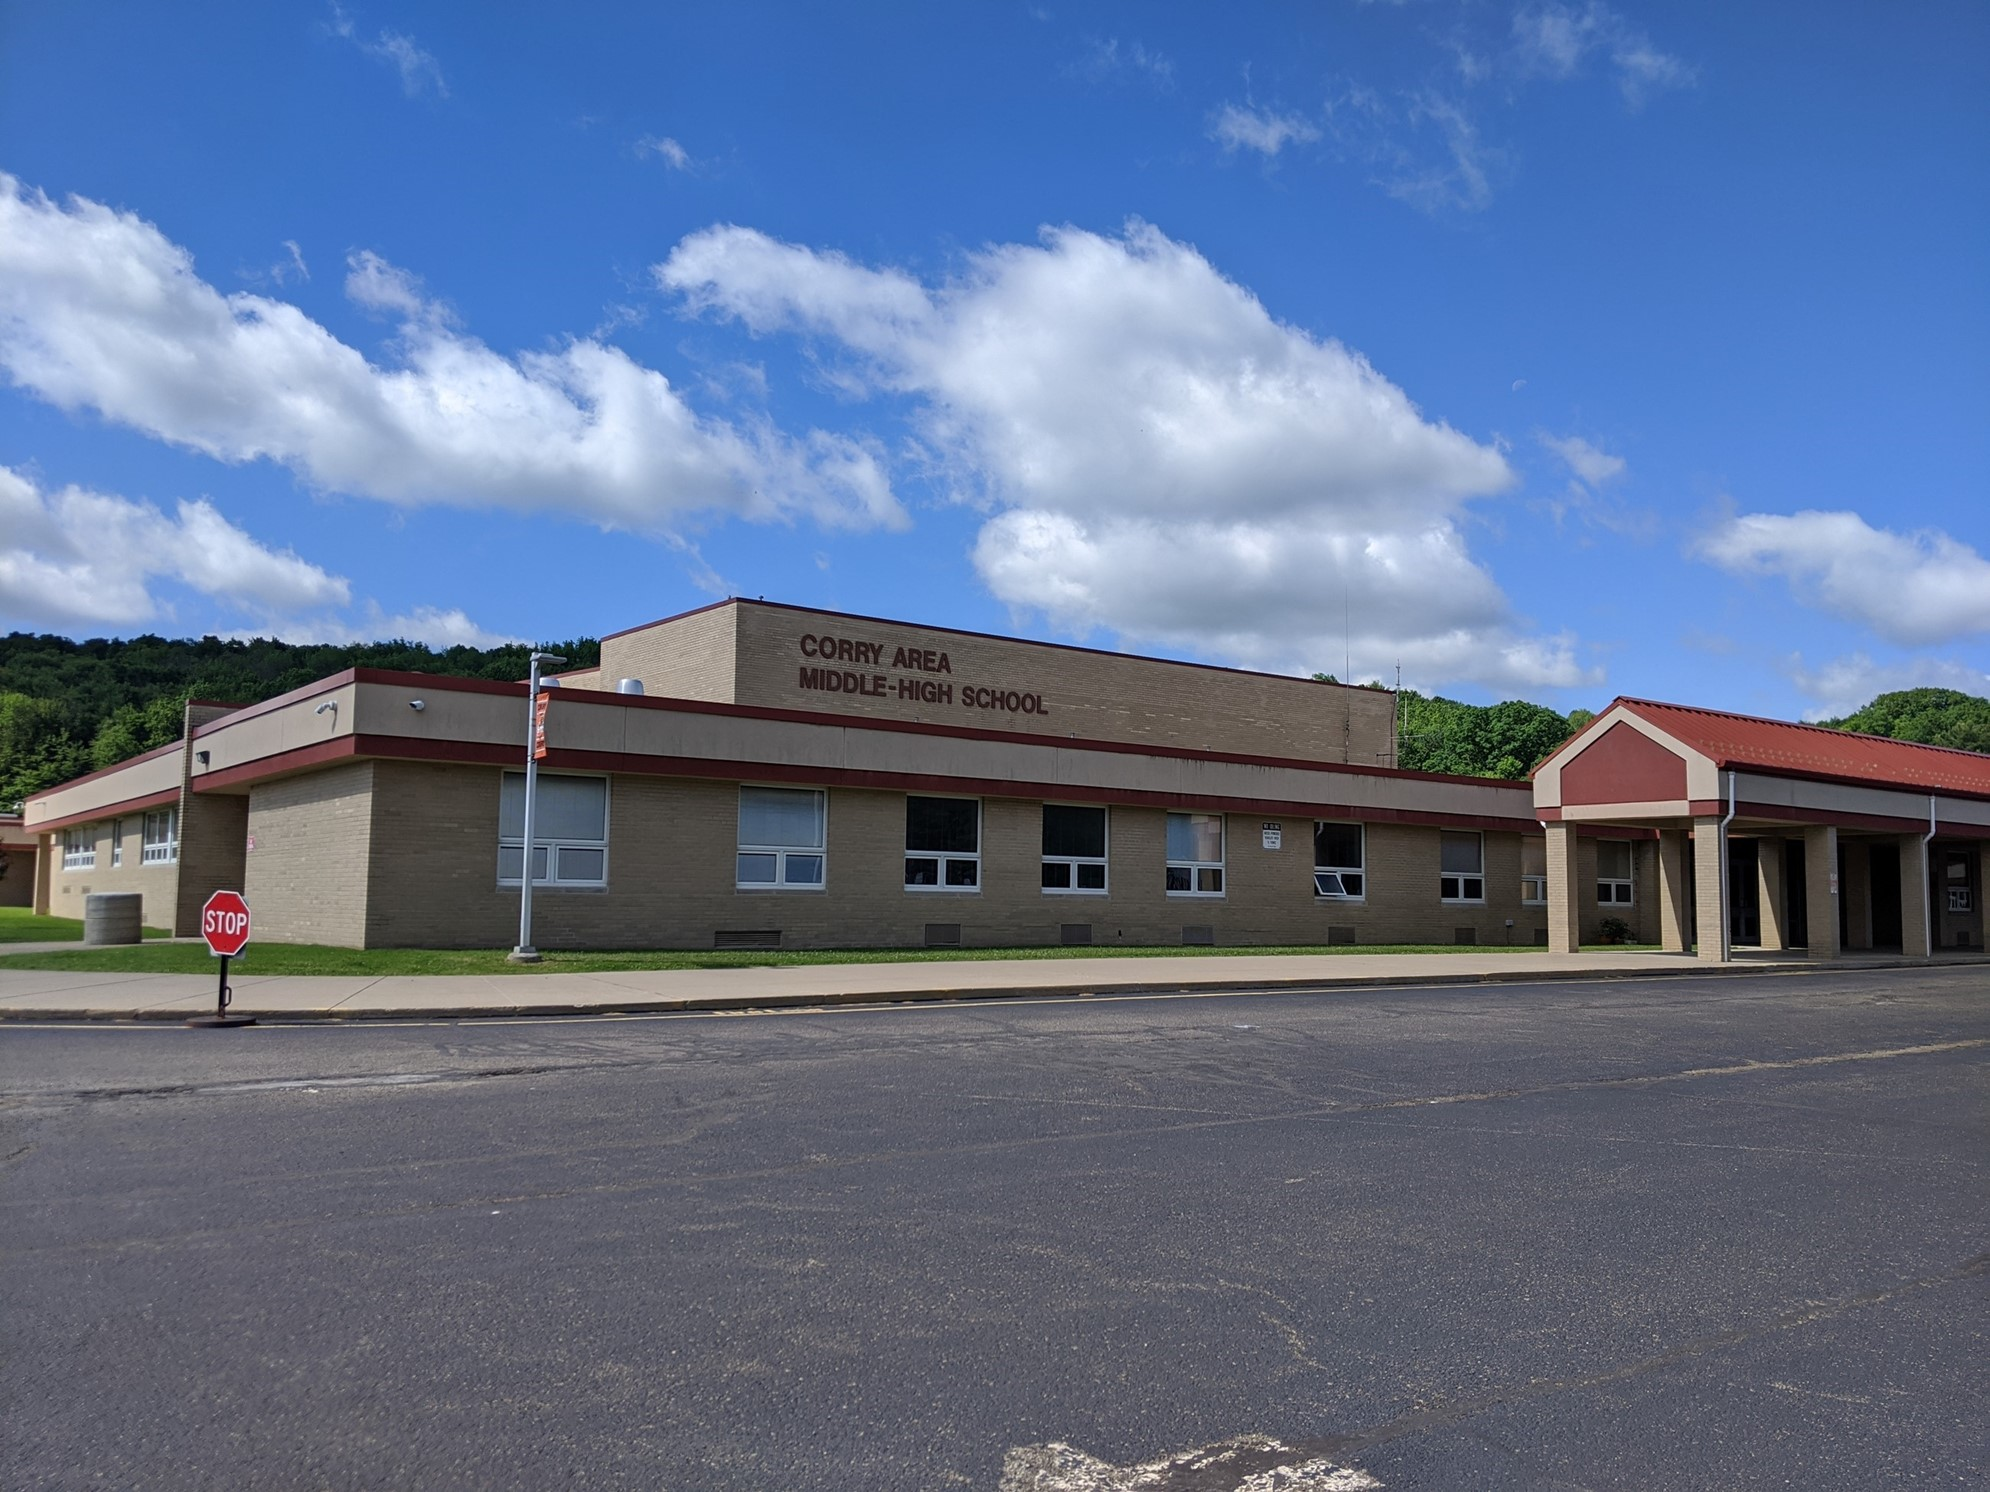 Corry Area Middle High School